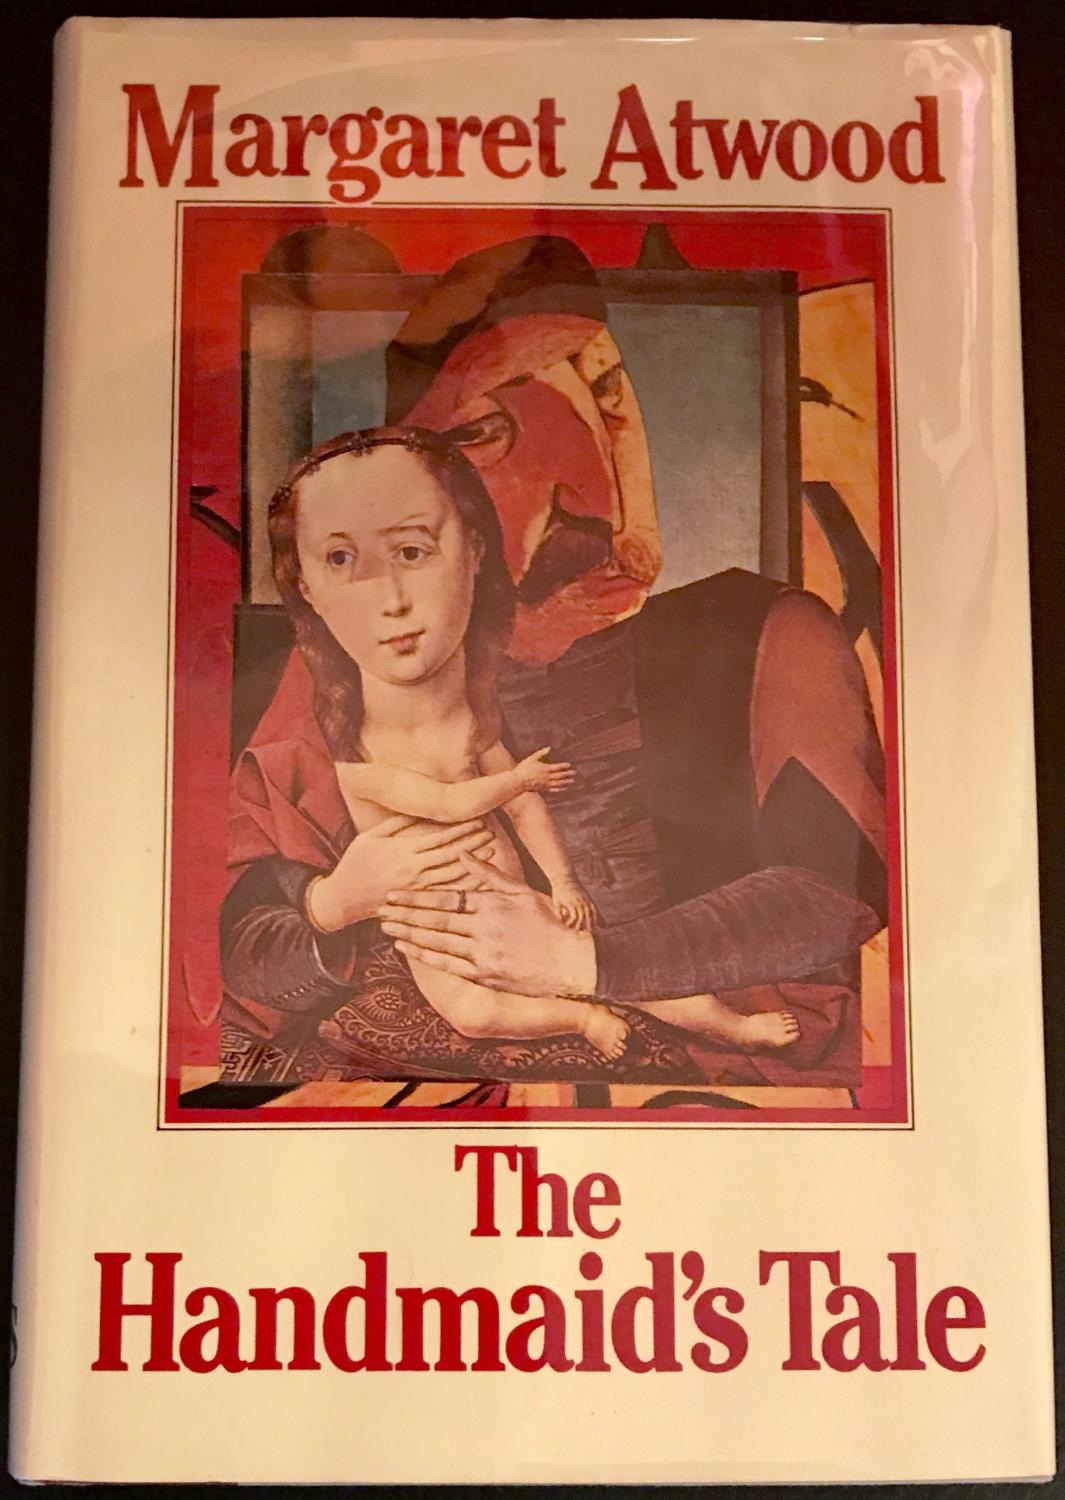 The Handmaid's Tale by Margaret Atwood, first edition cover